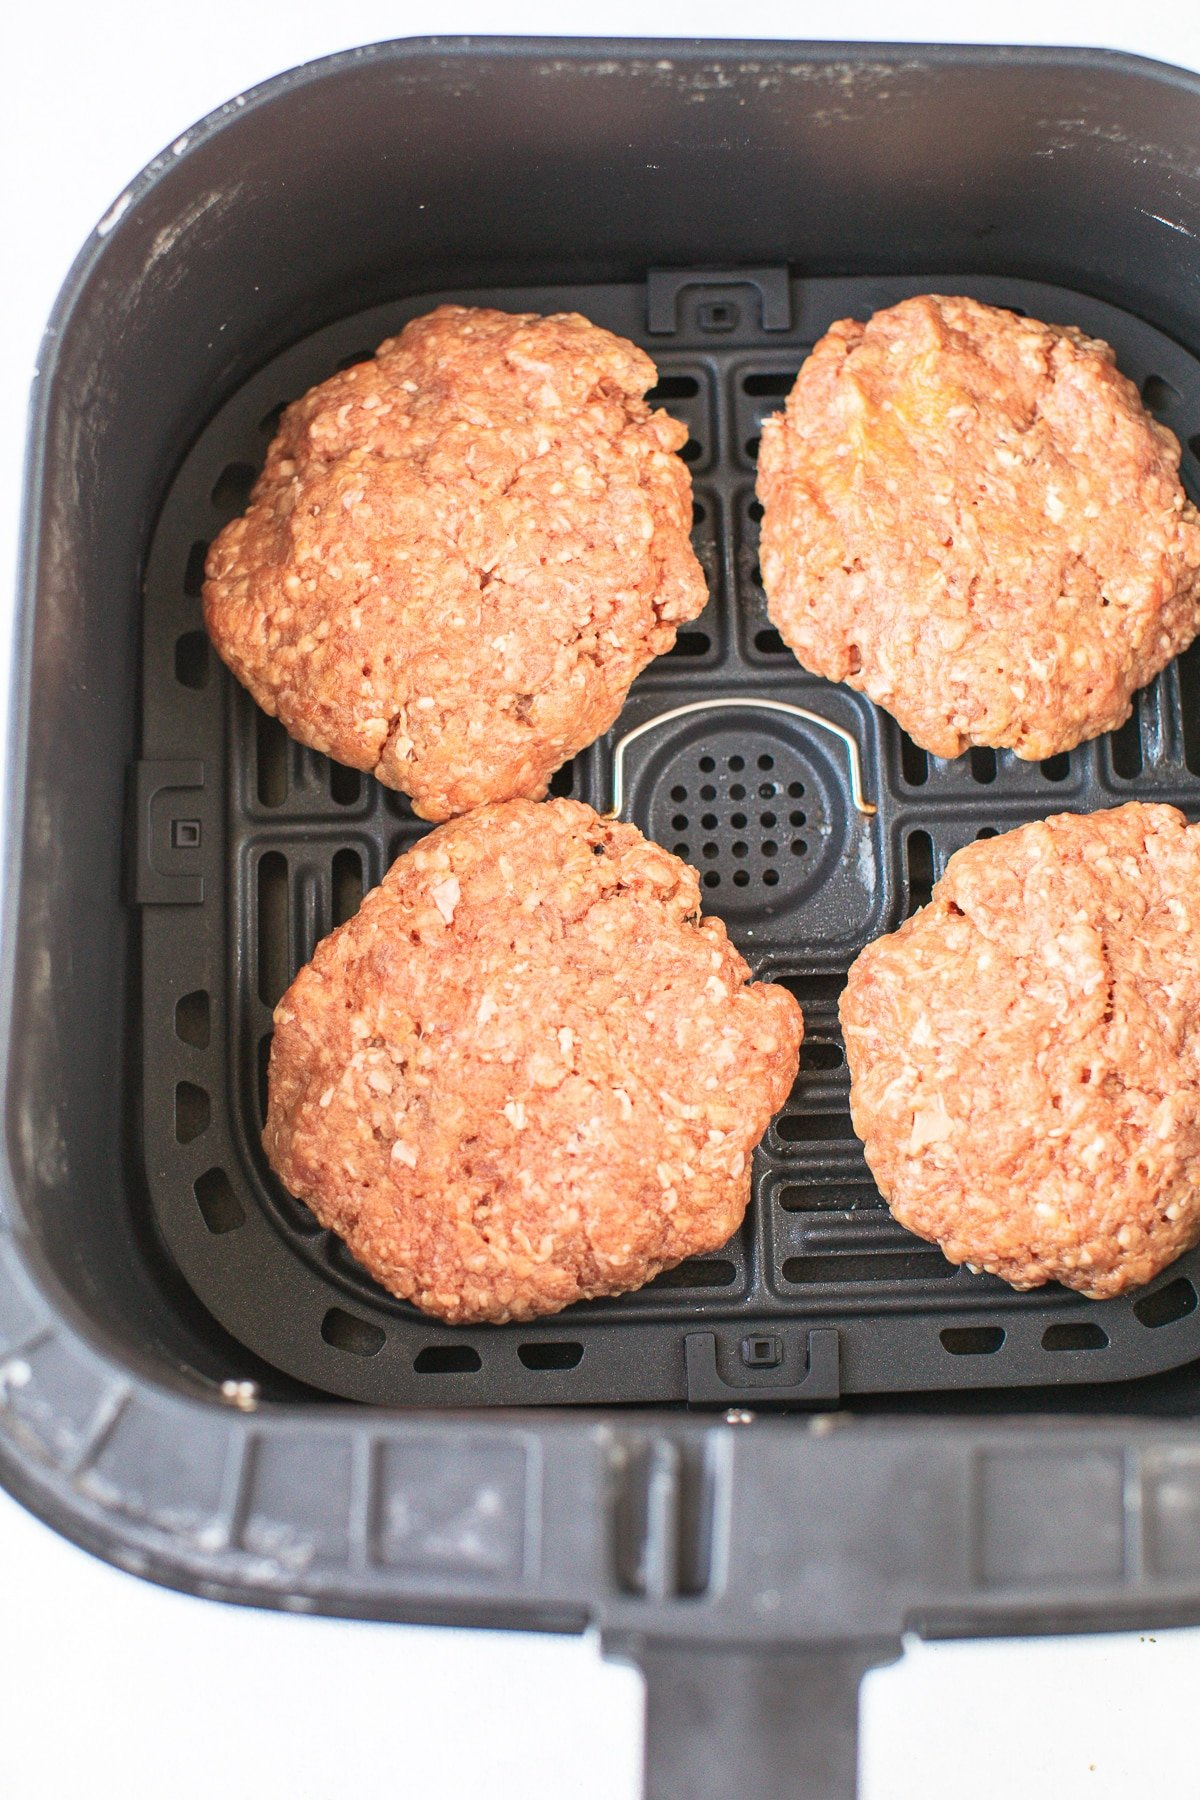 hamburger patties ready to be cooked in air fryer basket